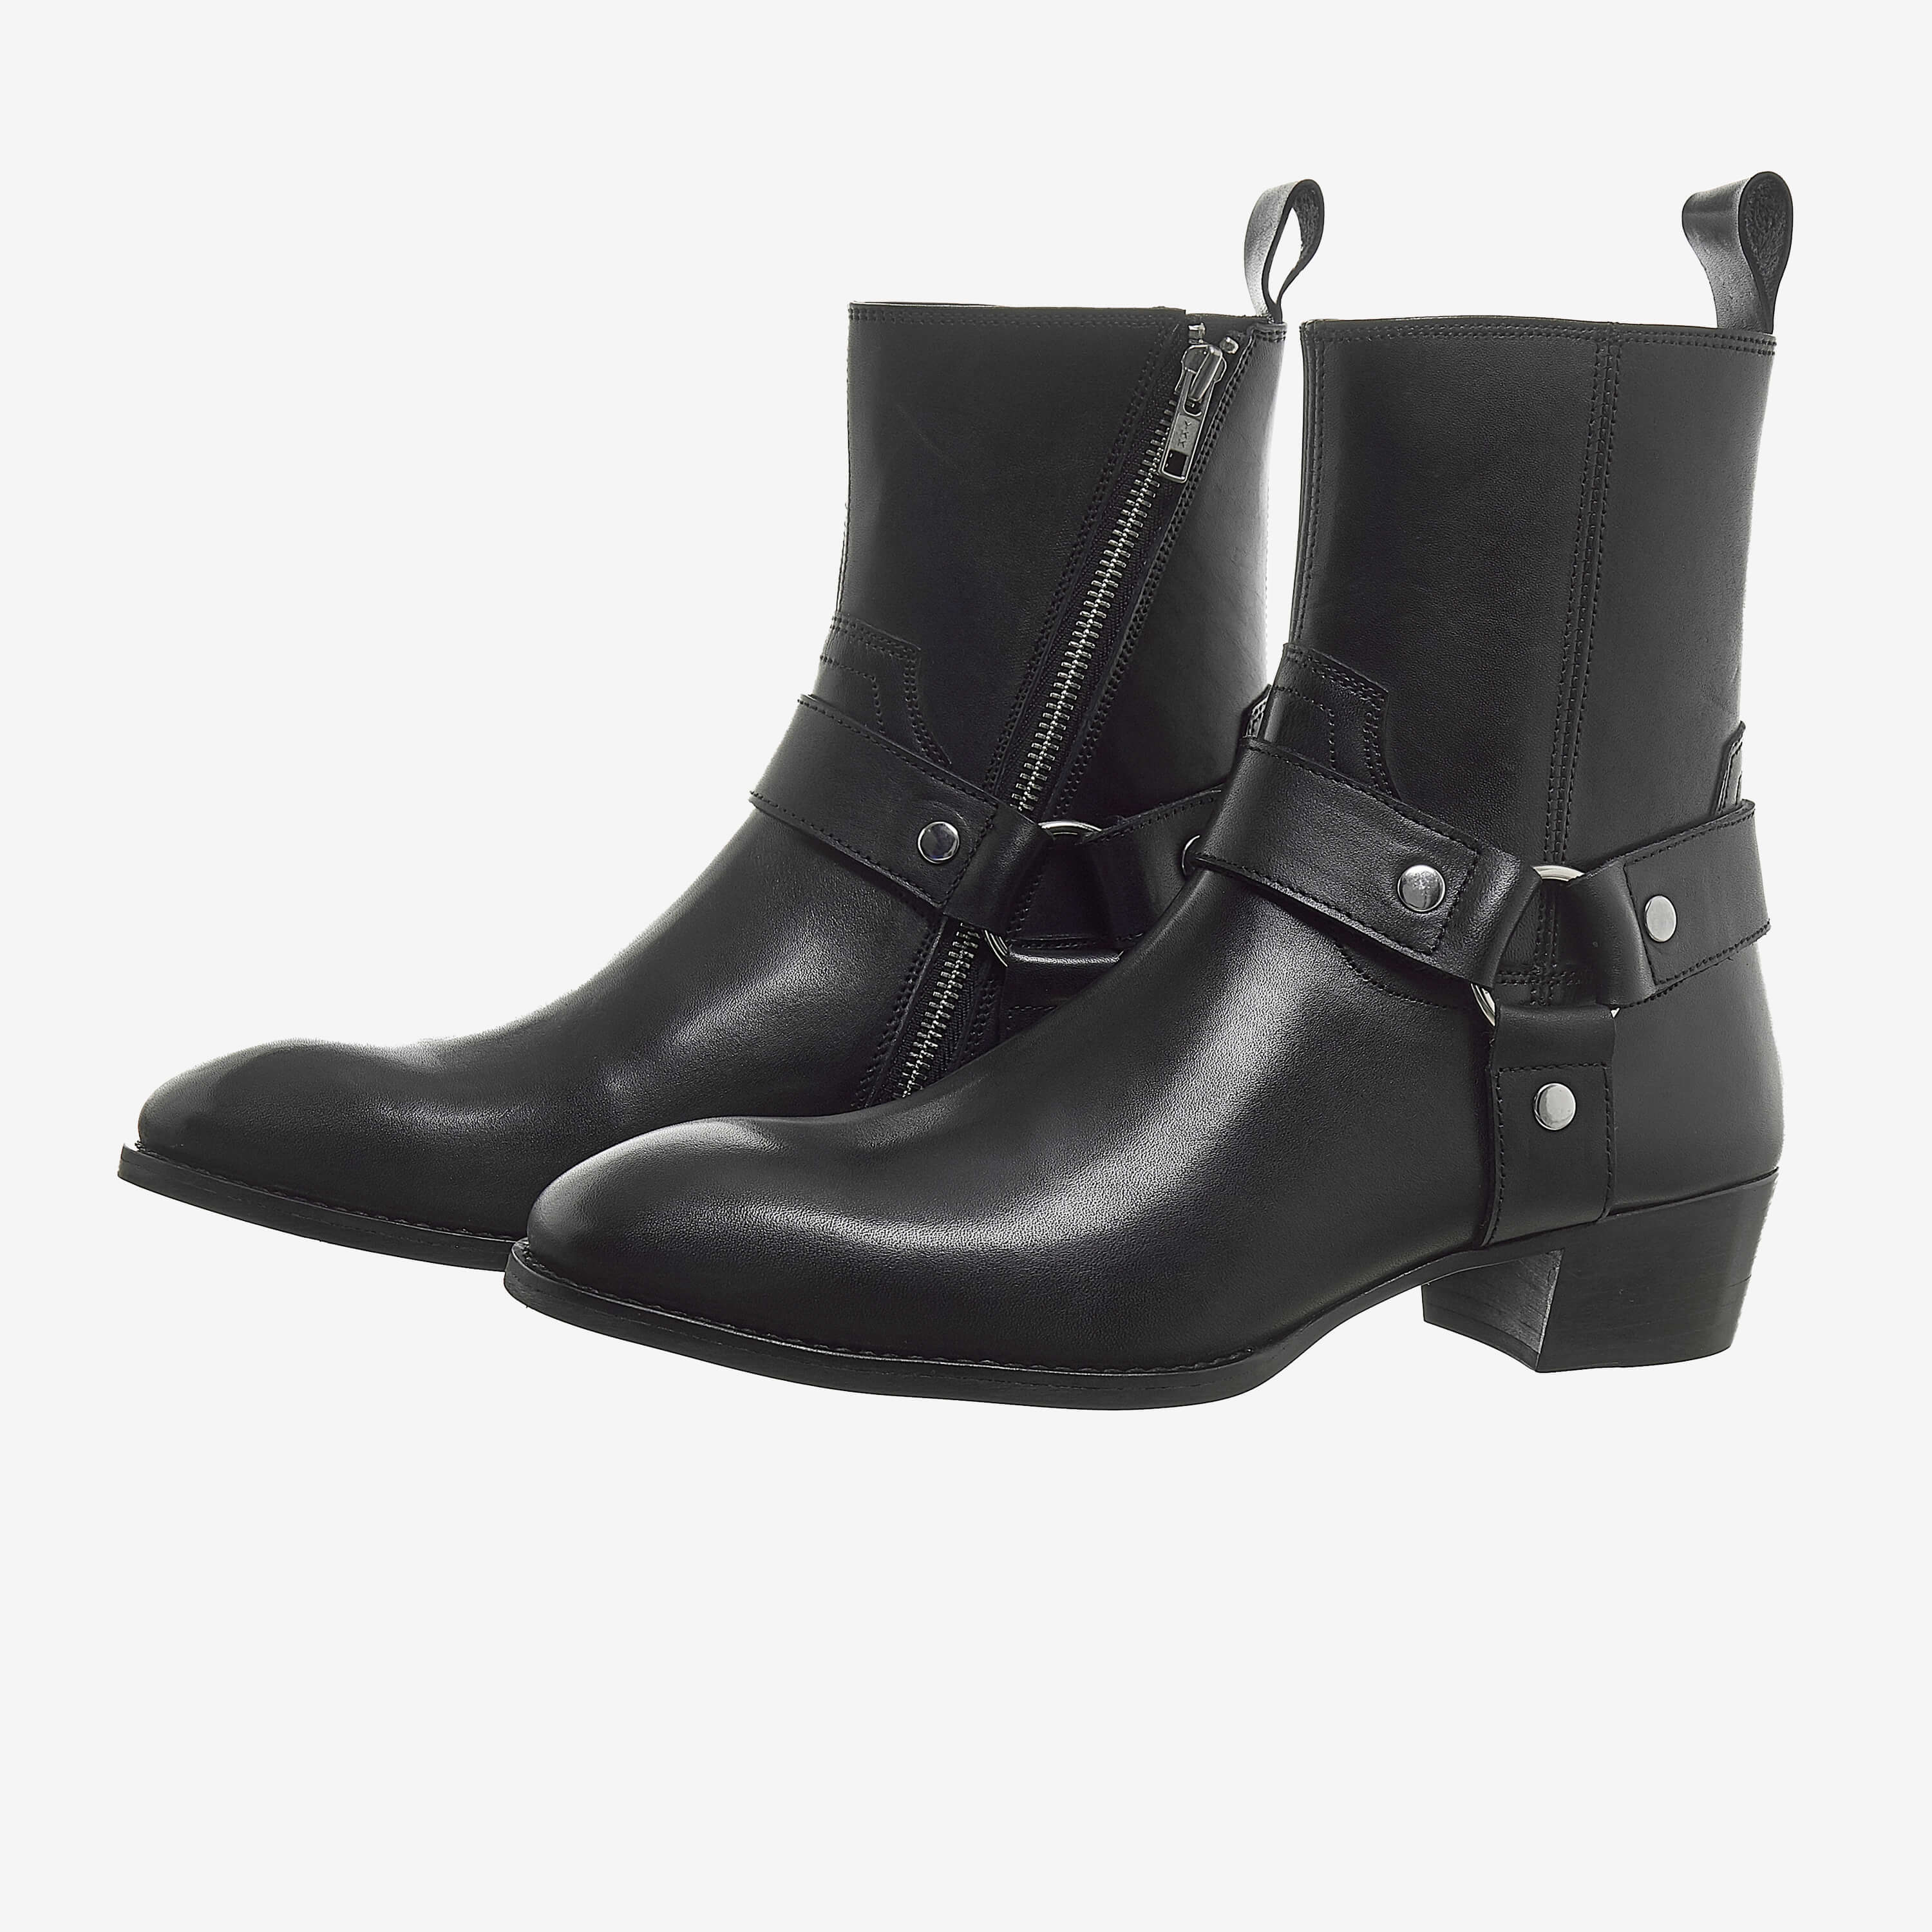 Leather Harness Boots In Black Leather Harness Boots In Black SS2020 5